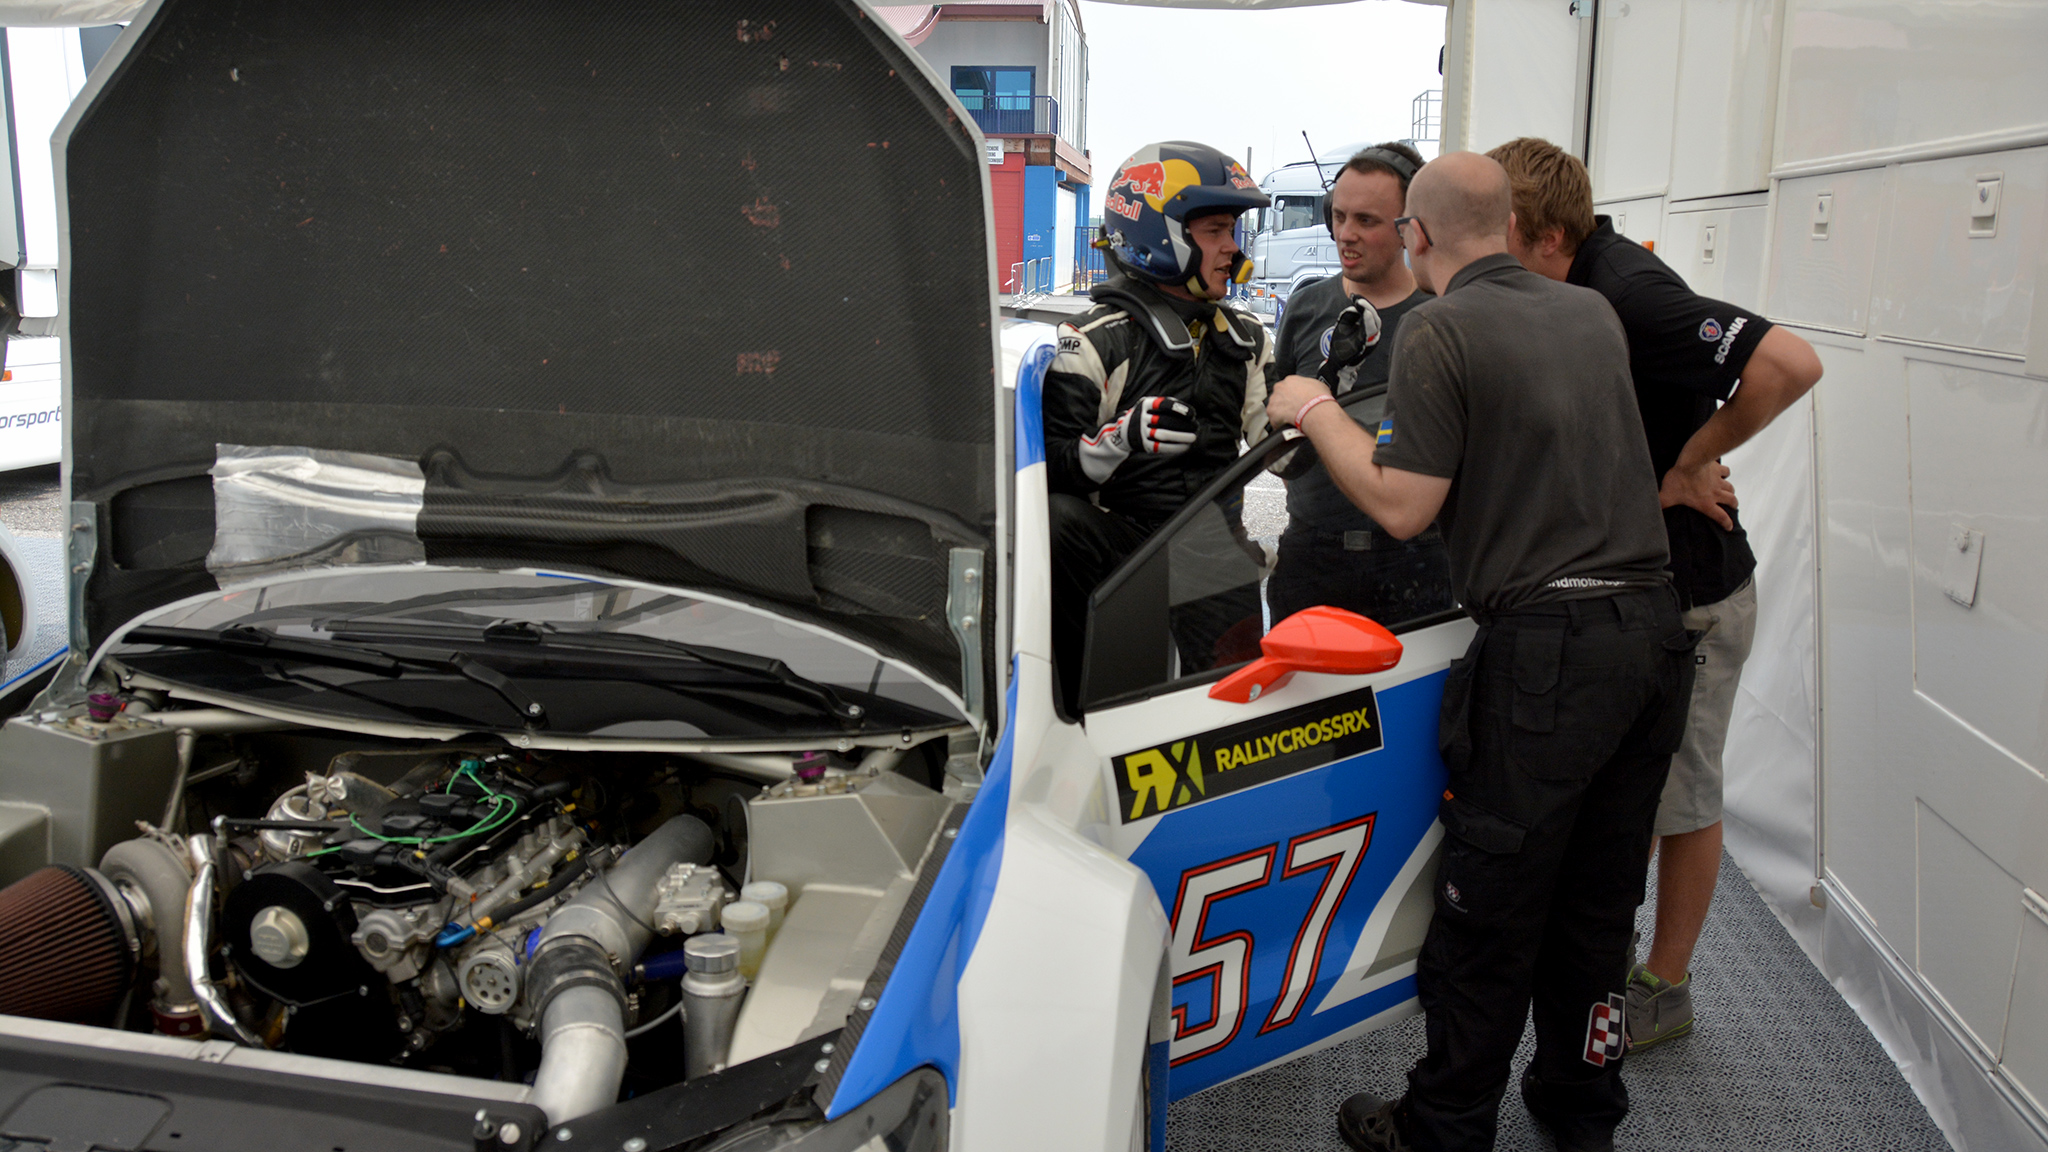 Heikkinen is quick to credit his crew for his rally racing success. Here, Heikkinen consults with his crew before the World RX season opener in Portugal.